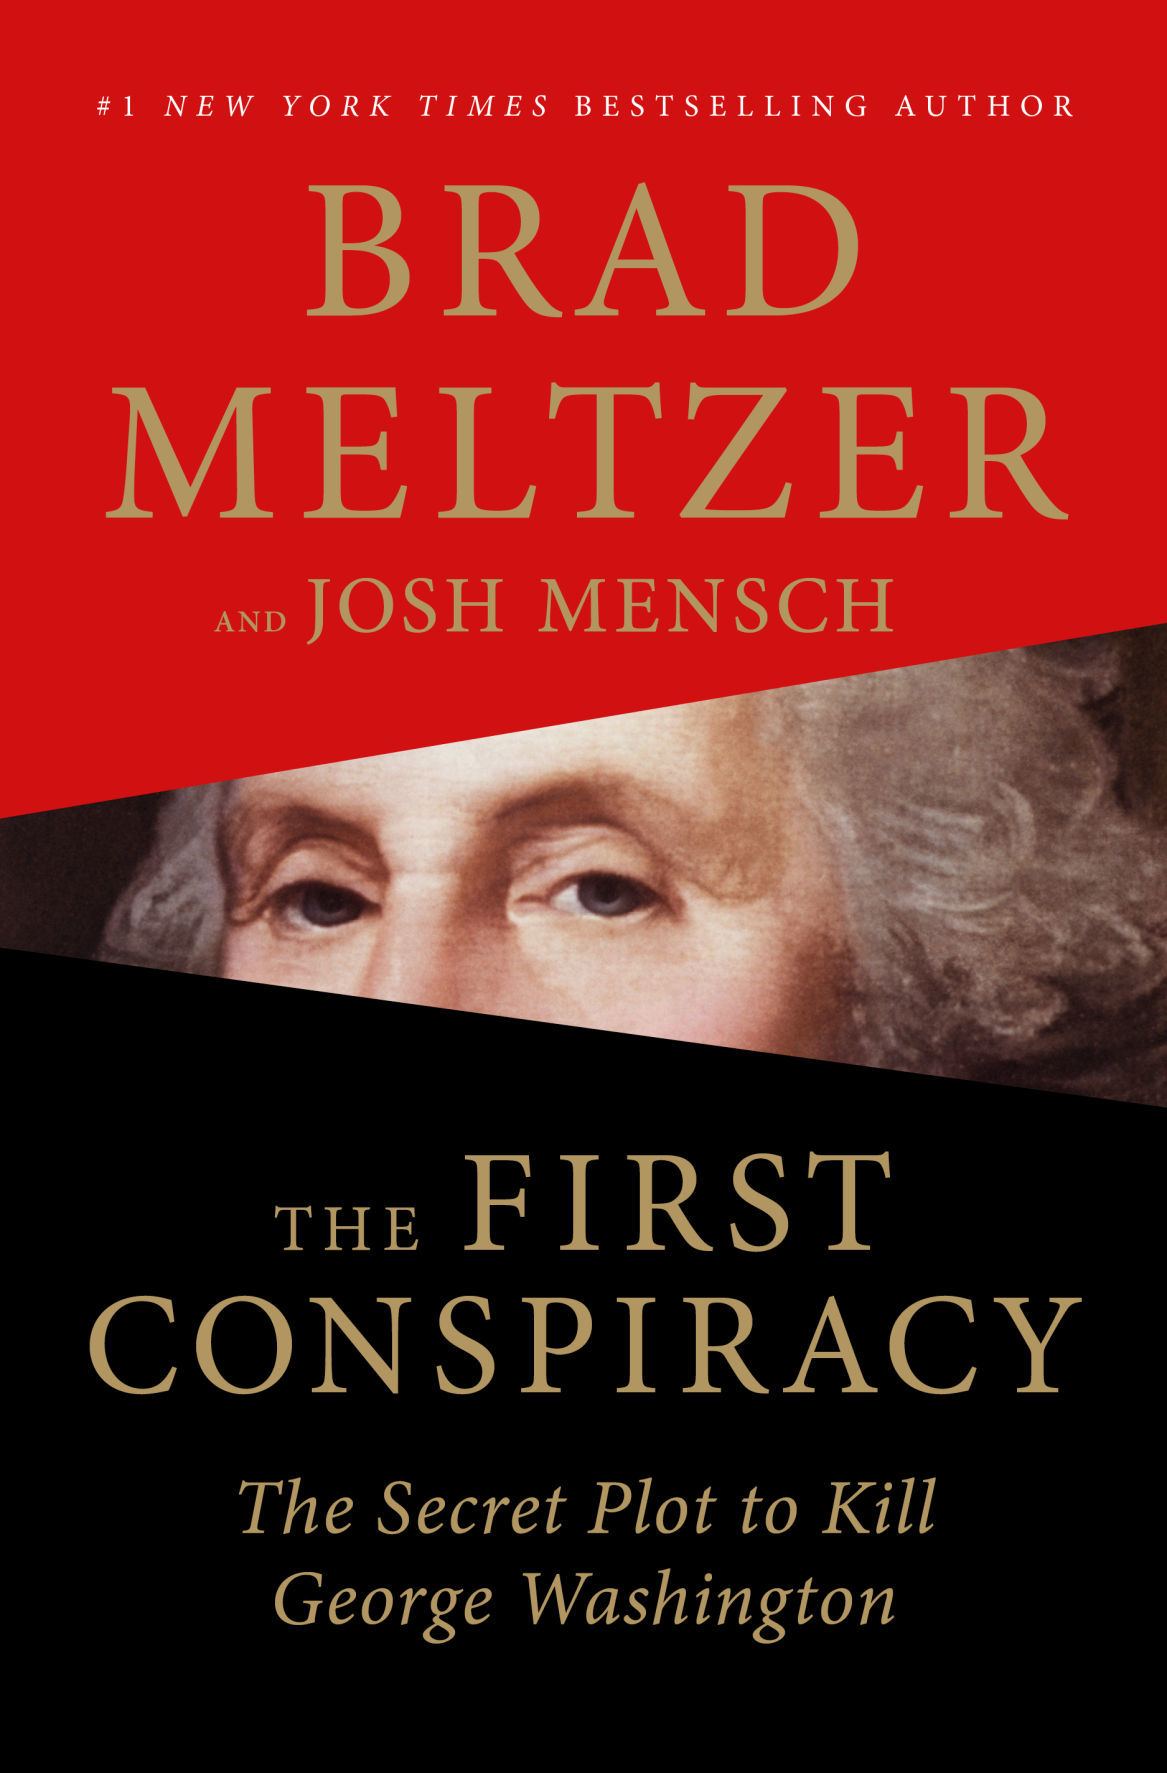 Nonfiction book by Brad Melzer